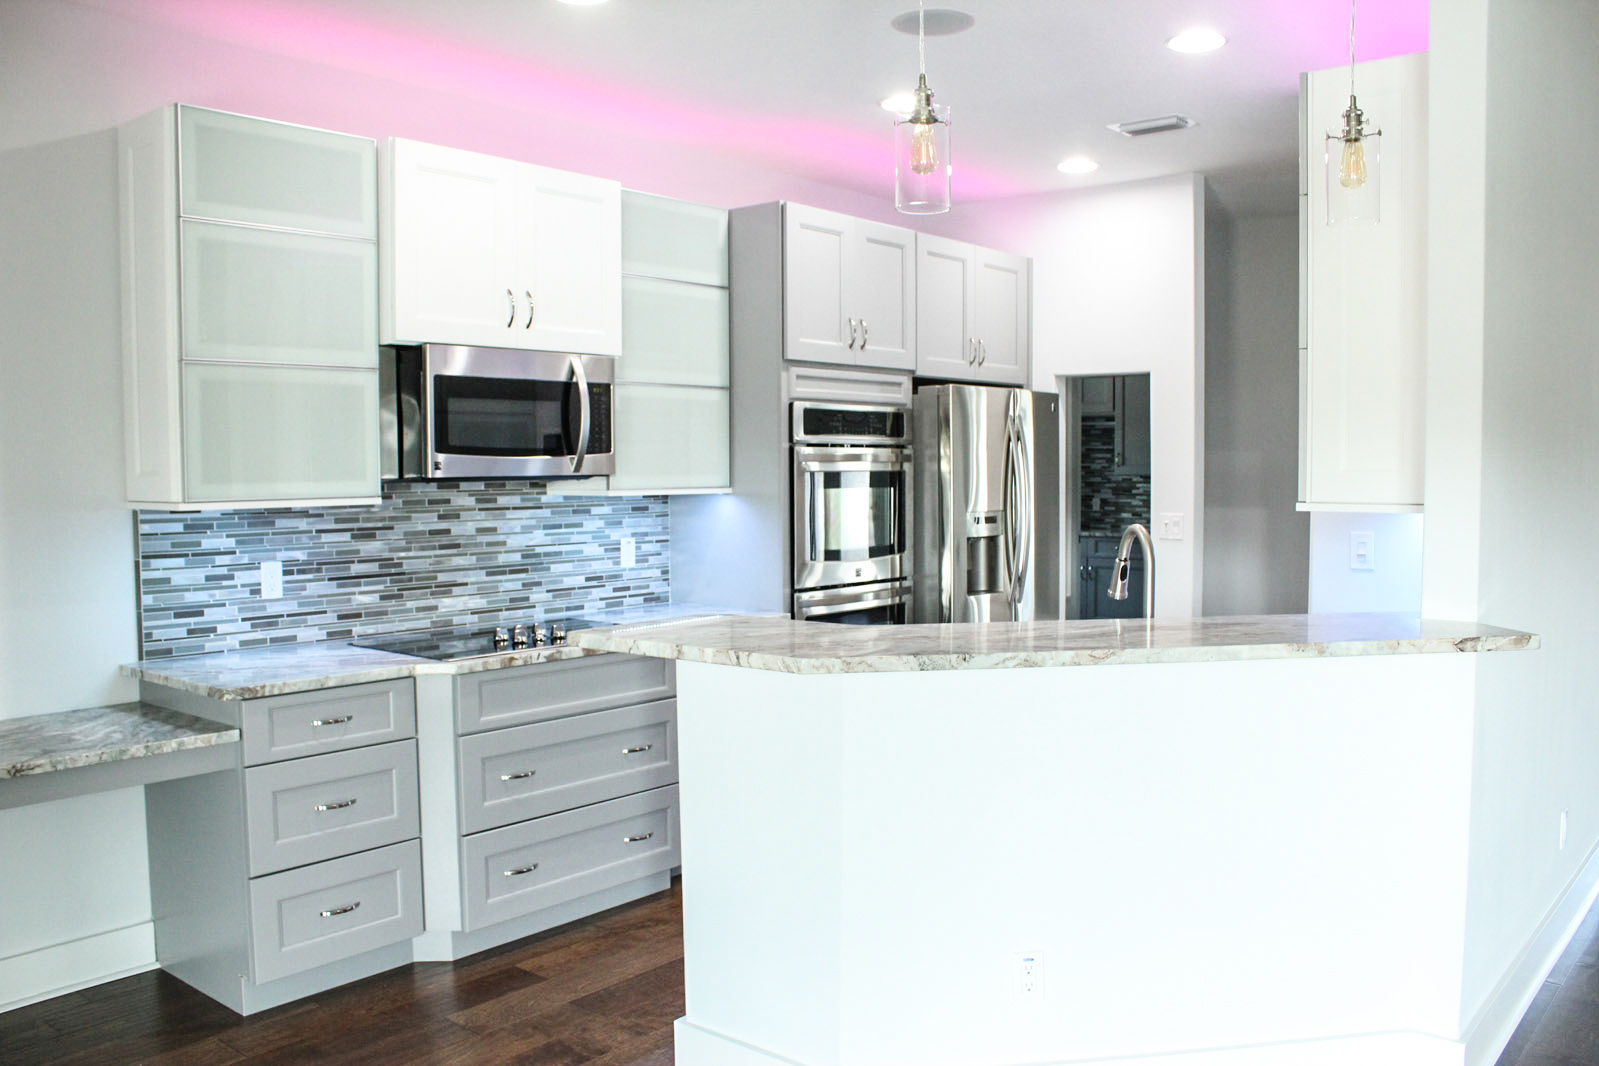 Awesome Icf Home Design Image Collection - Home Decorating Ideas ...